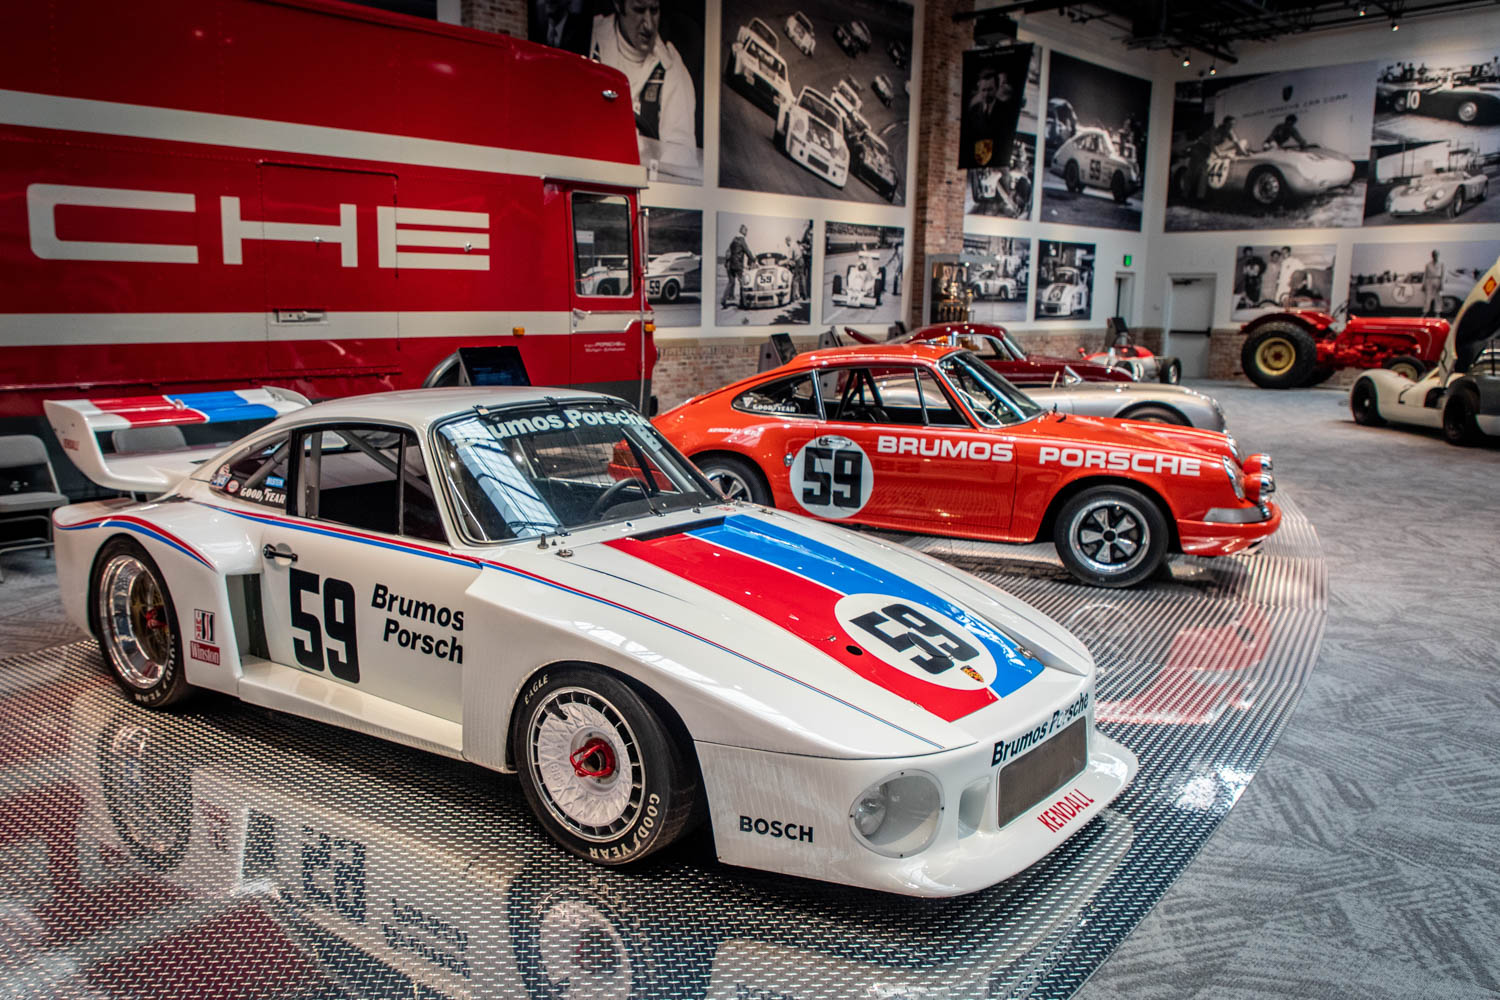 The 1979 Porsche 935 that Peter Gregg drove to eight wins and eight pole positions in the '79 IMSA Camel GT championship. It was his last race car and is believed to be the only unmodified 935 left in existence.